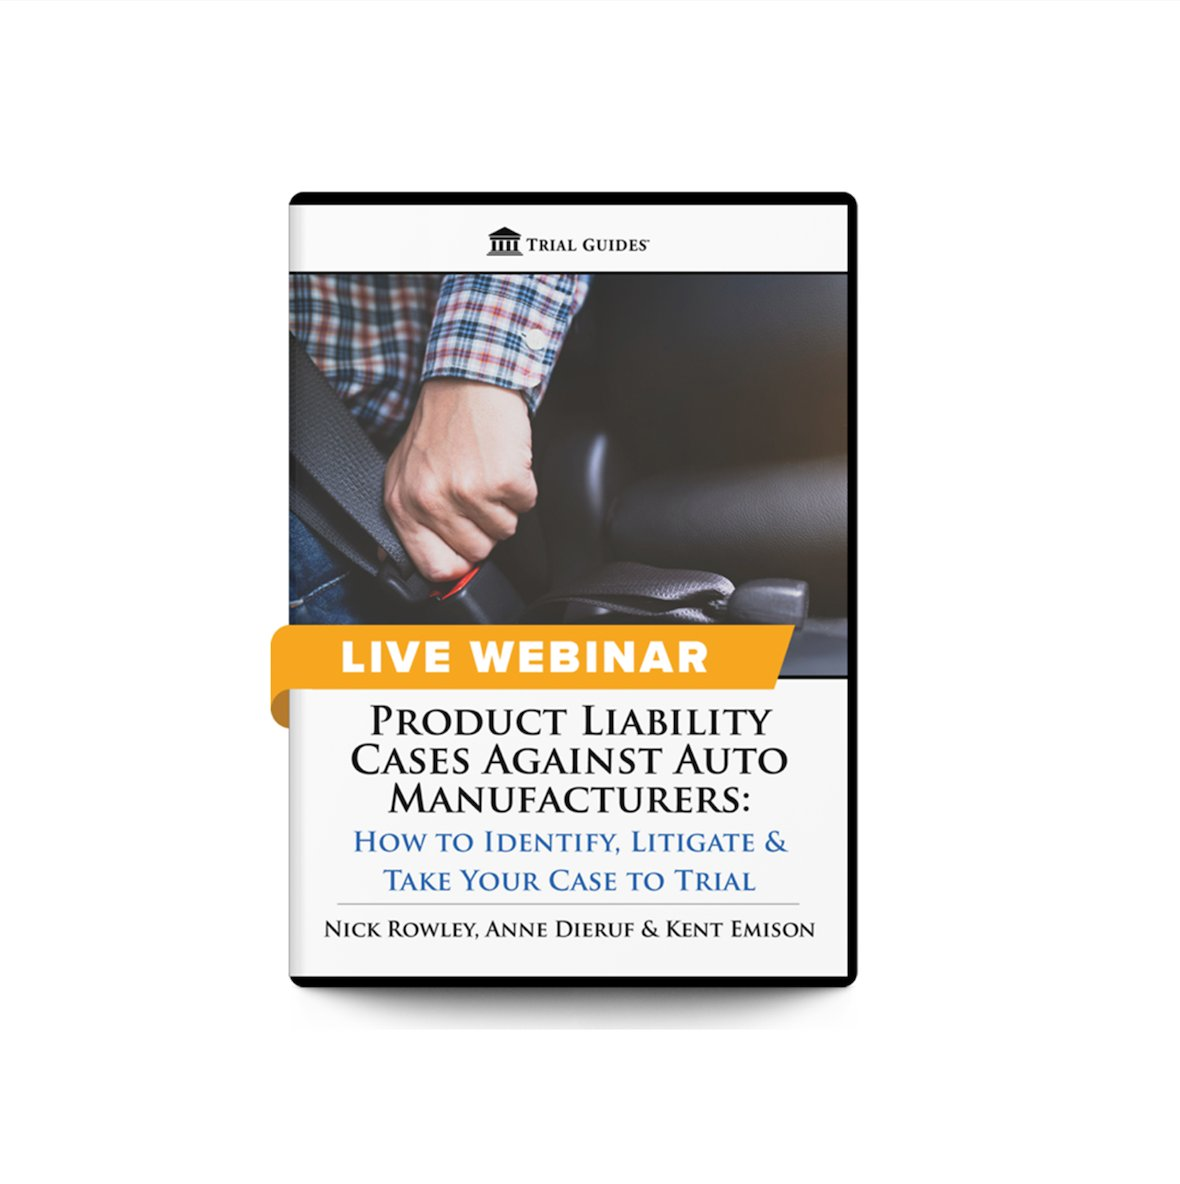 FREE Webinar!  Product Liability Cases Against Auto Manufacturers: How to Identify, Litigate, and Take Your Case to Trial - with Nick Rowley, Anne Dieruf & Kent Emison  July 23, 2020 ♦ 12:30 PM ET ♦ 9:30 AM PT  Register and learn more here: https://t.co/NV9I9z3ZWp https://t.co/ldOQB3pbta